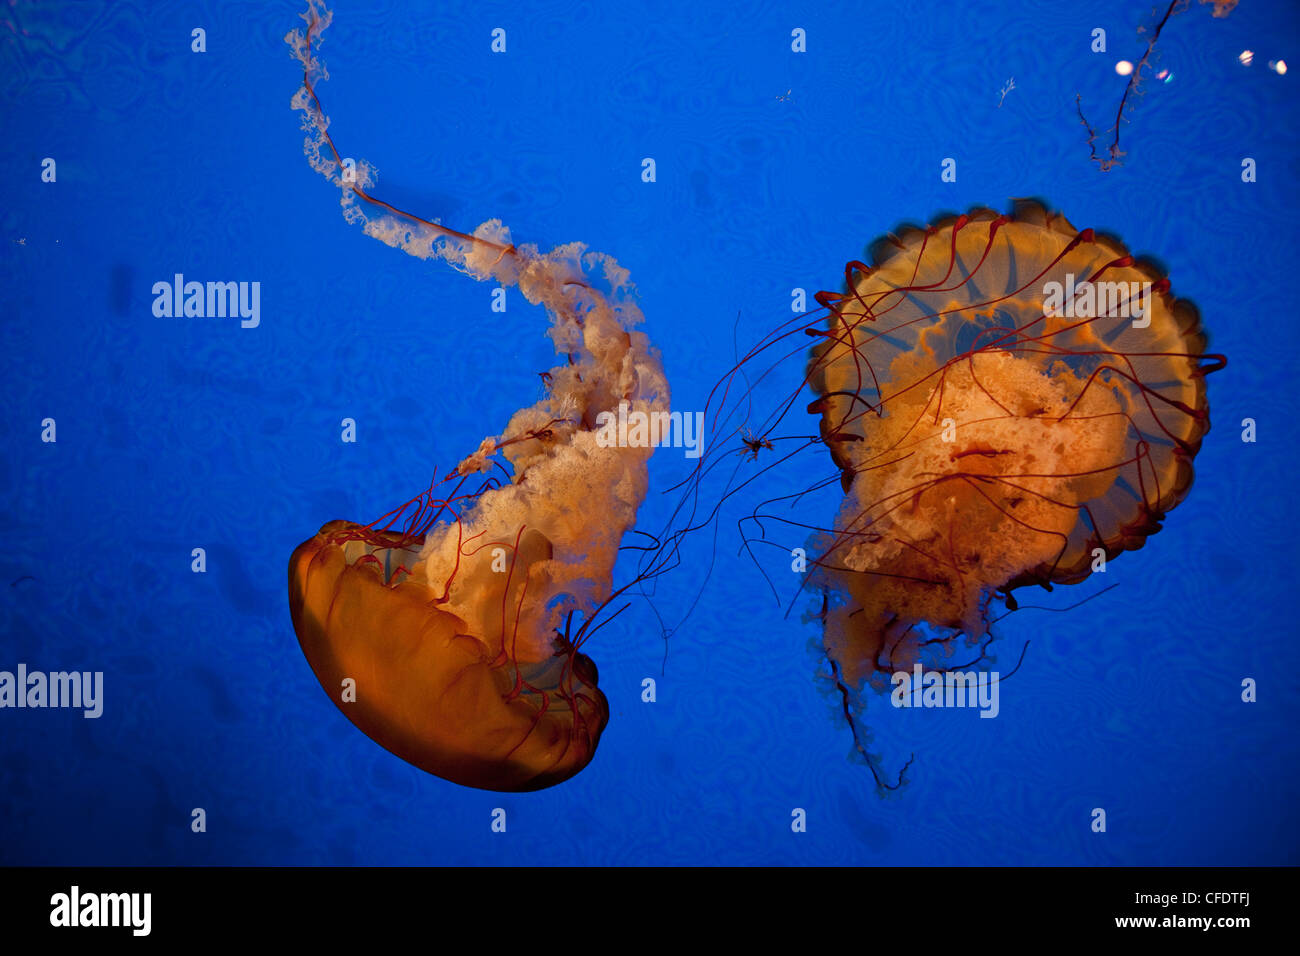 Jellyfish display at Shaw Ocean Discovery Centre Aqaurium, Vancouver Island. - Stock Image